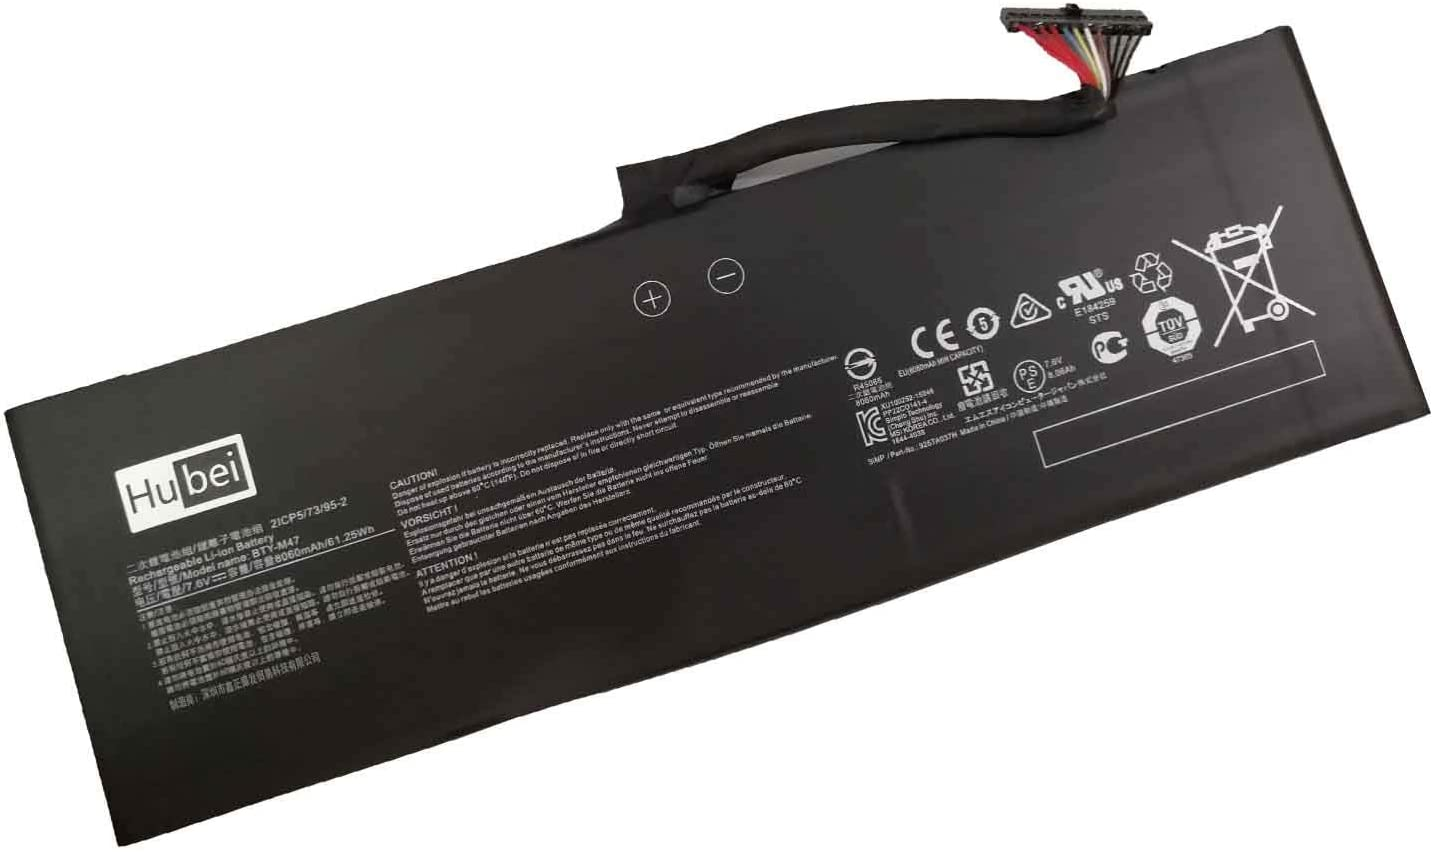 BTY-M47 Laptop Battery Replacement for MSI New sales New Orleans Mall GS40 6QE 6QE-006